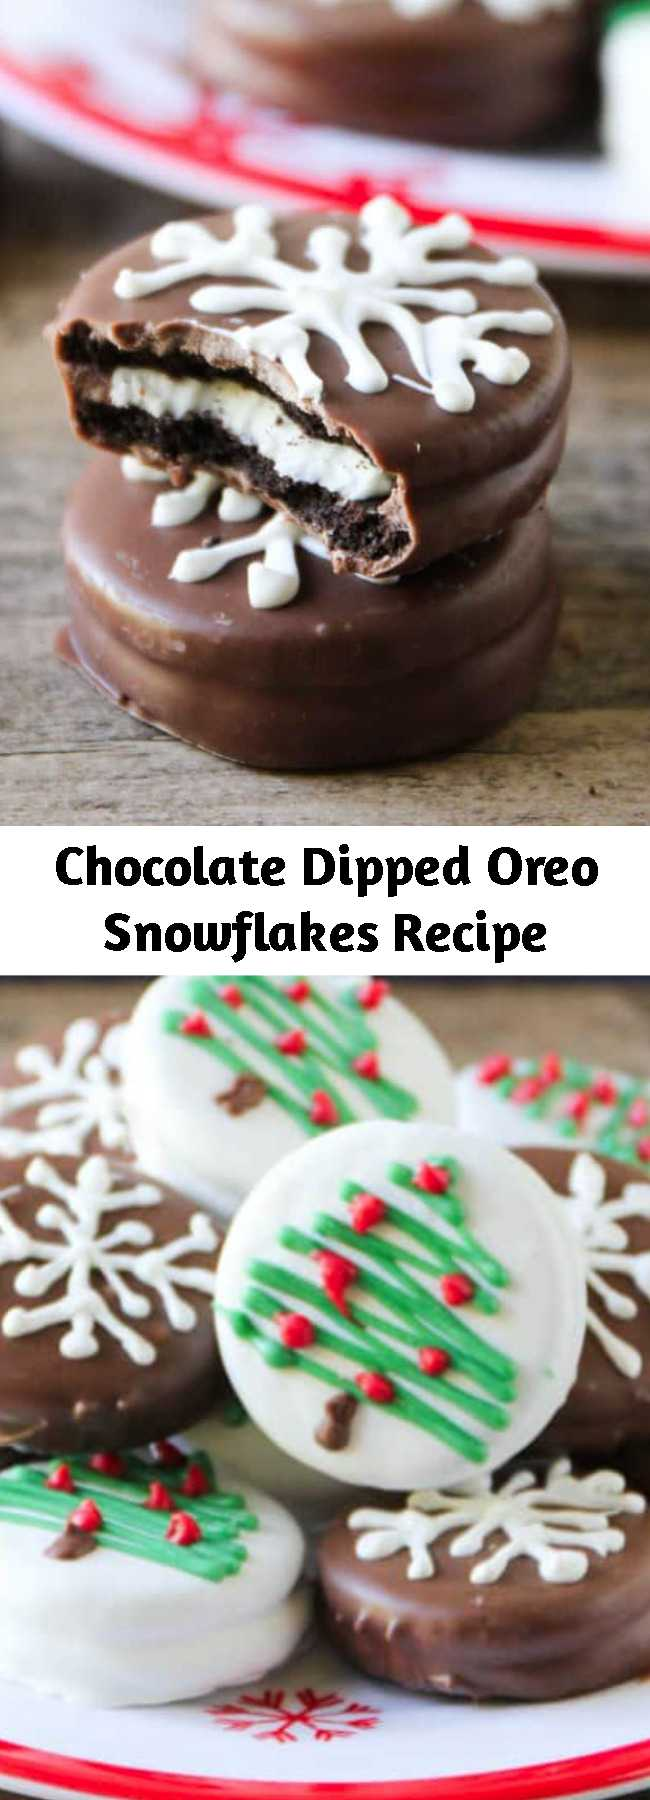 Chocolate Dipped Oreo Snowflakes Recipe - These chocolate dipped Oreo snowflakes are adorable and easy treats the whole family can help make! Only takes 2 ingredients to make.